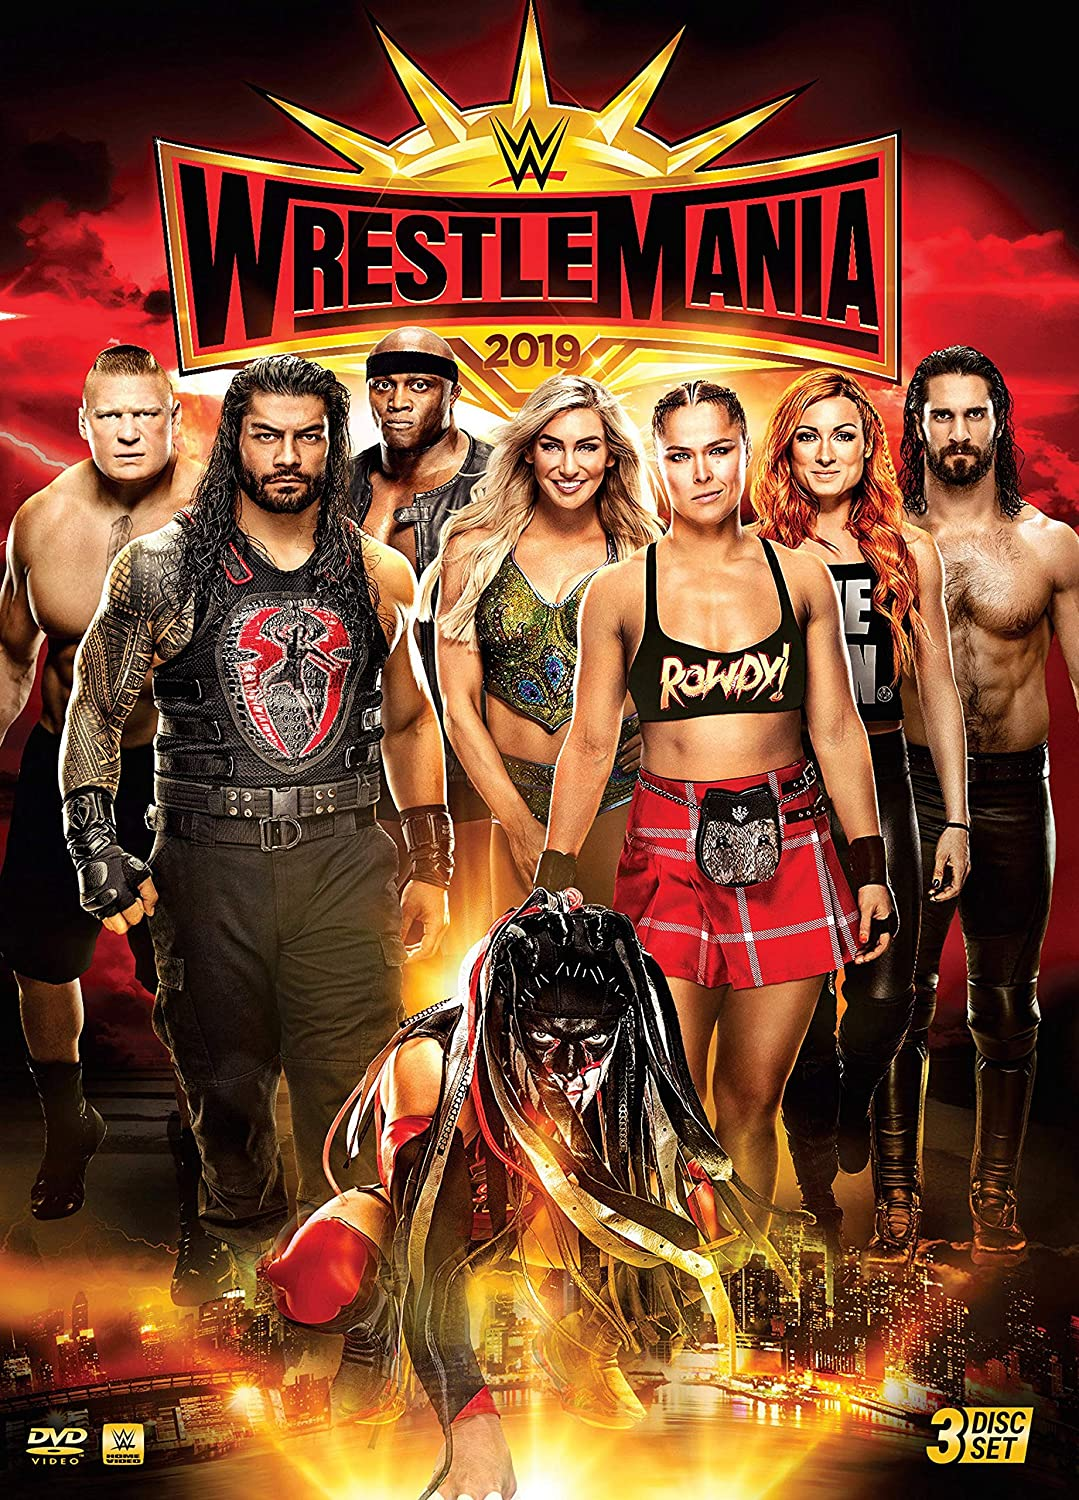 Art WrestleMania 35 Poster 2019 WWE Event Ronda Rousey VS Flair VS Lynch Art Print